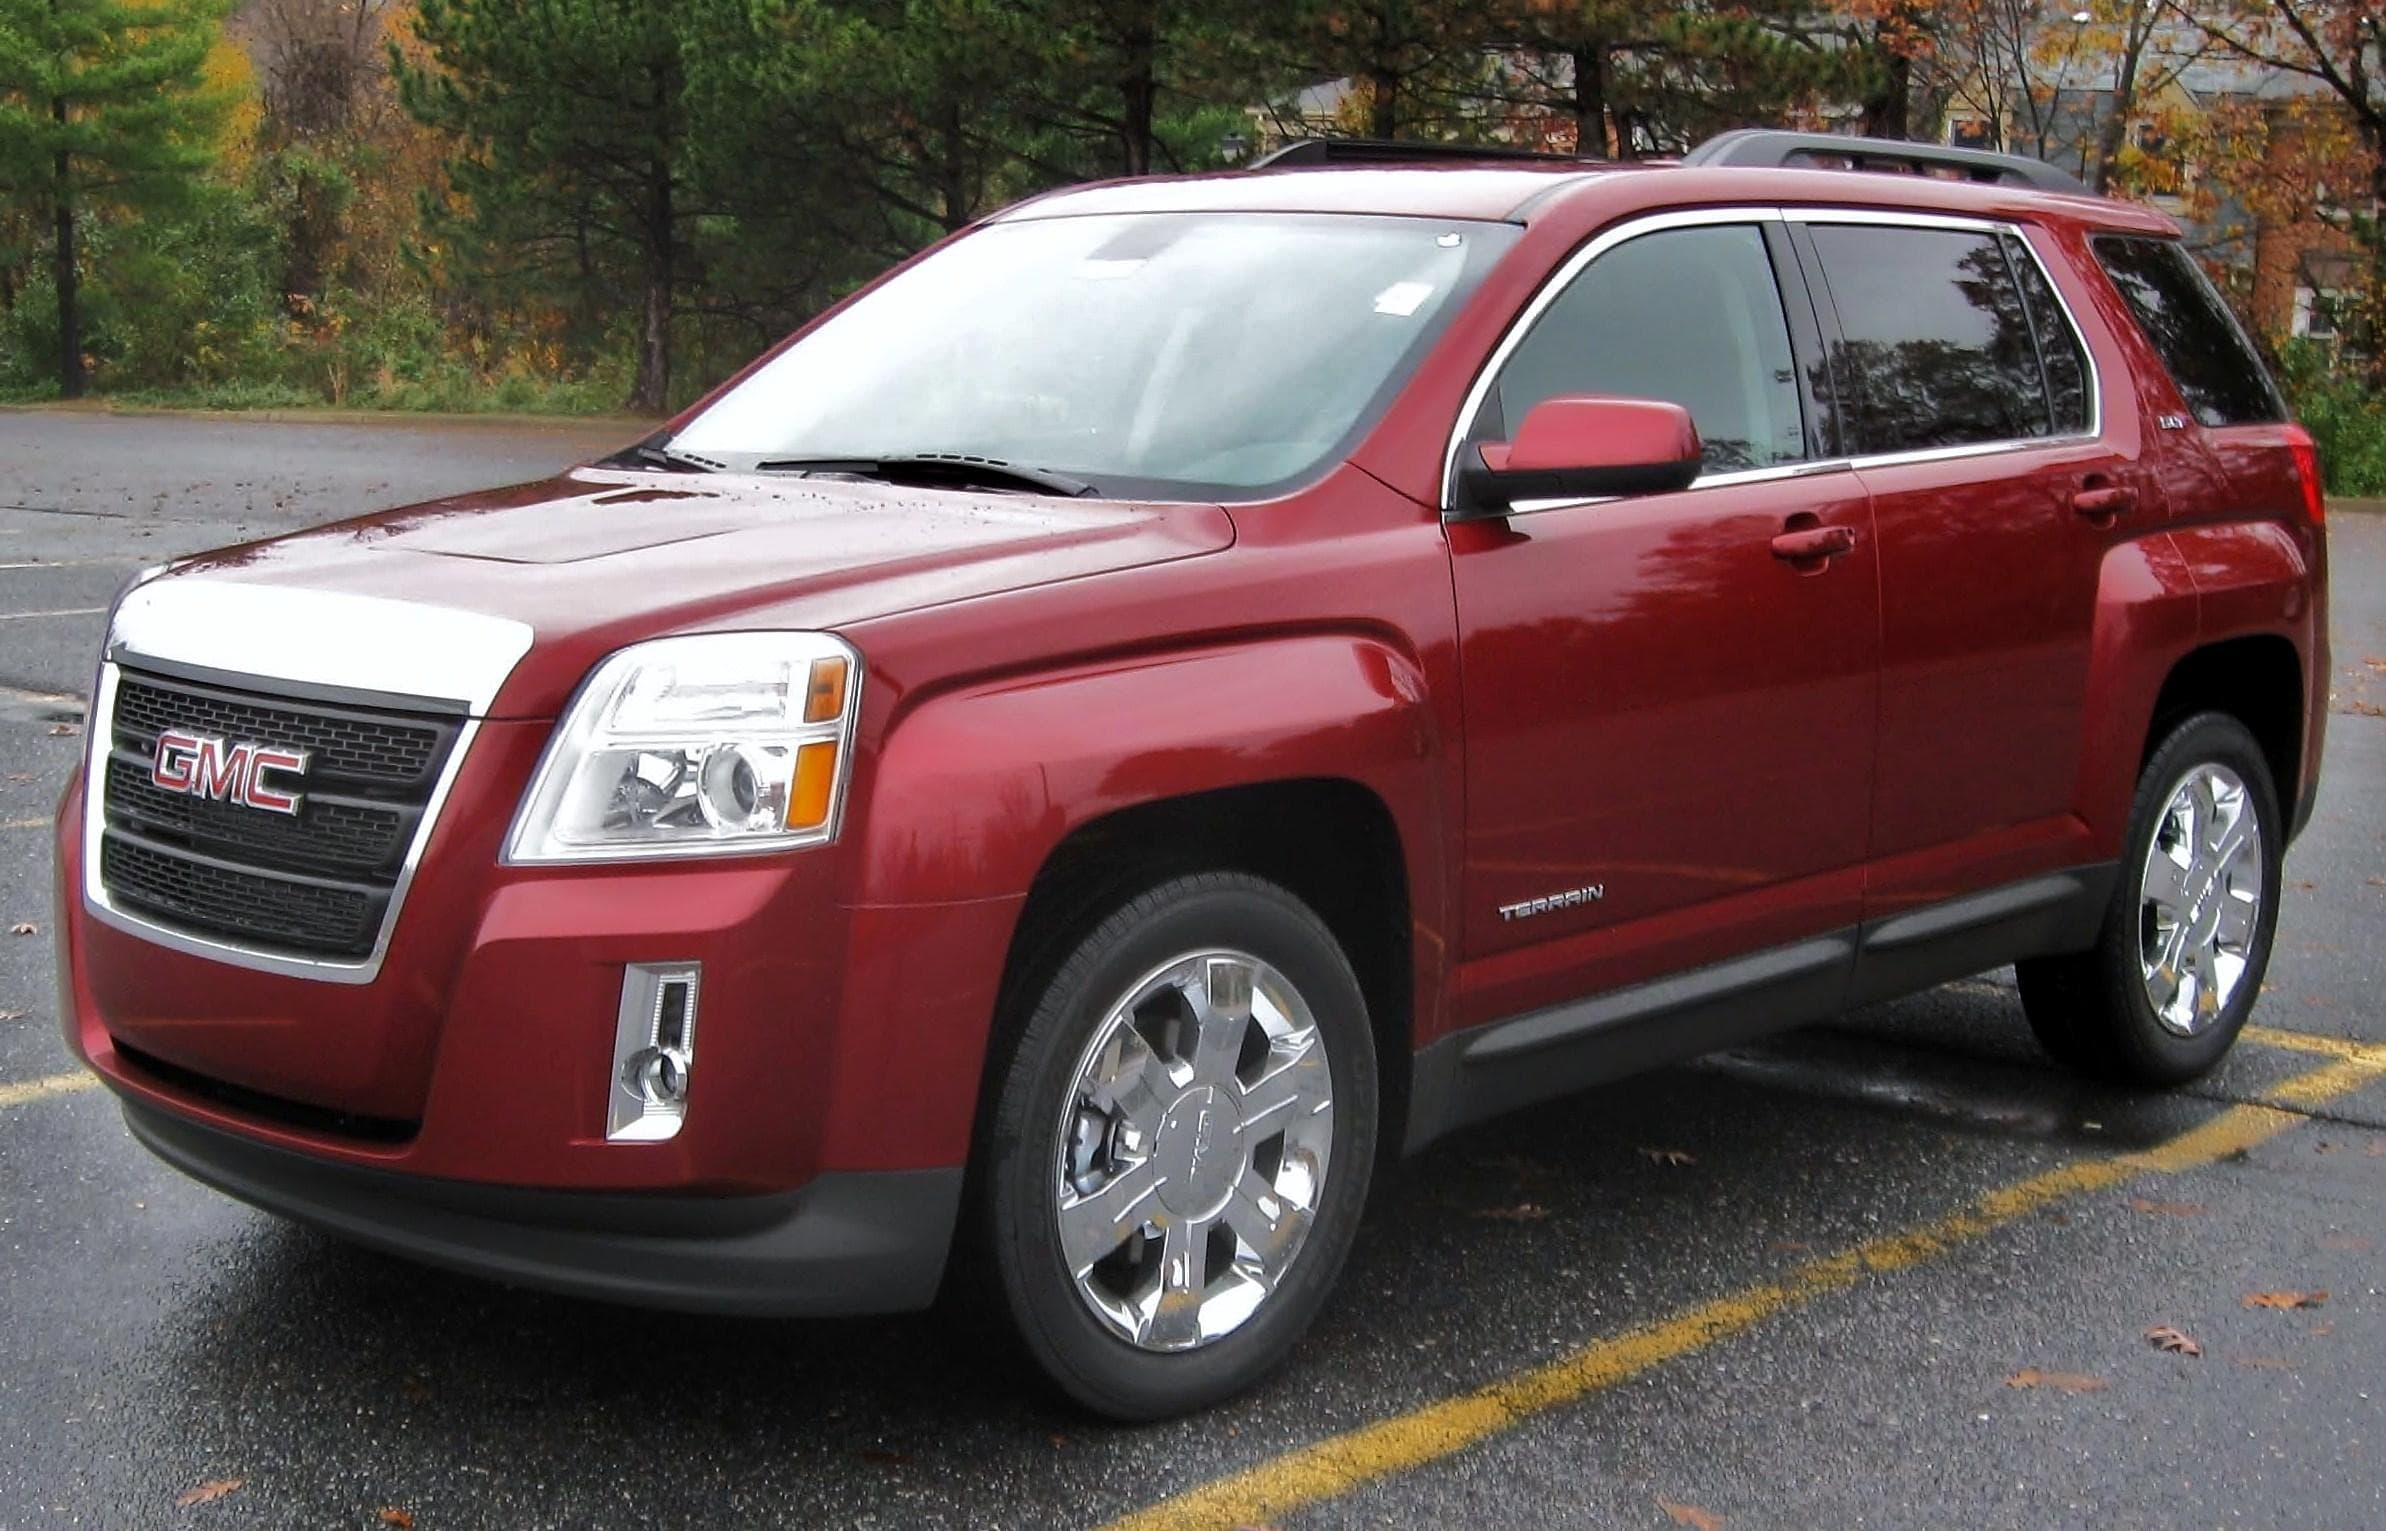 All GMC Models  List of GMC Cars   Vehicles GMC Terrain is listed  or ranked  3 on the list Full List of GMC